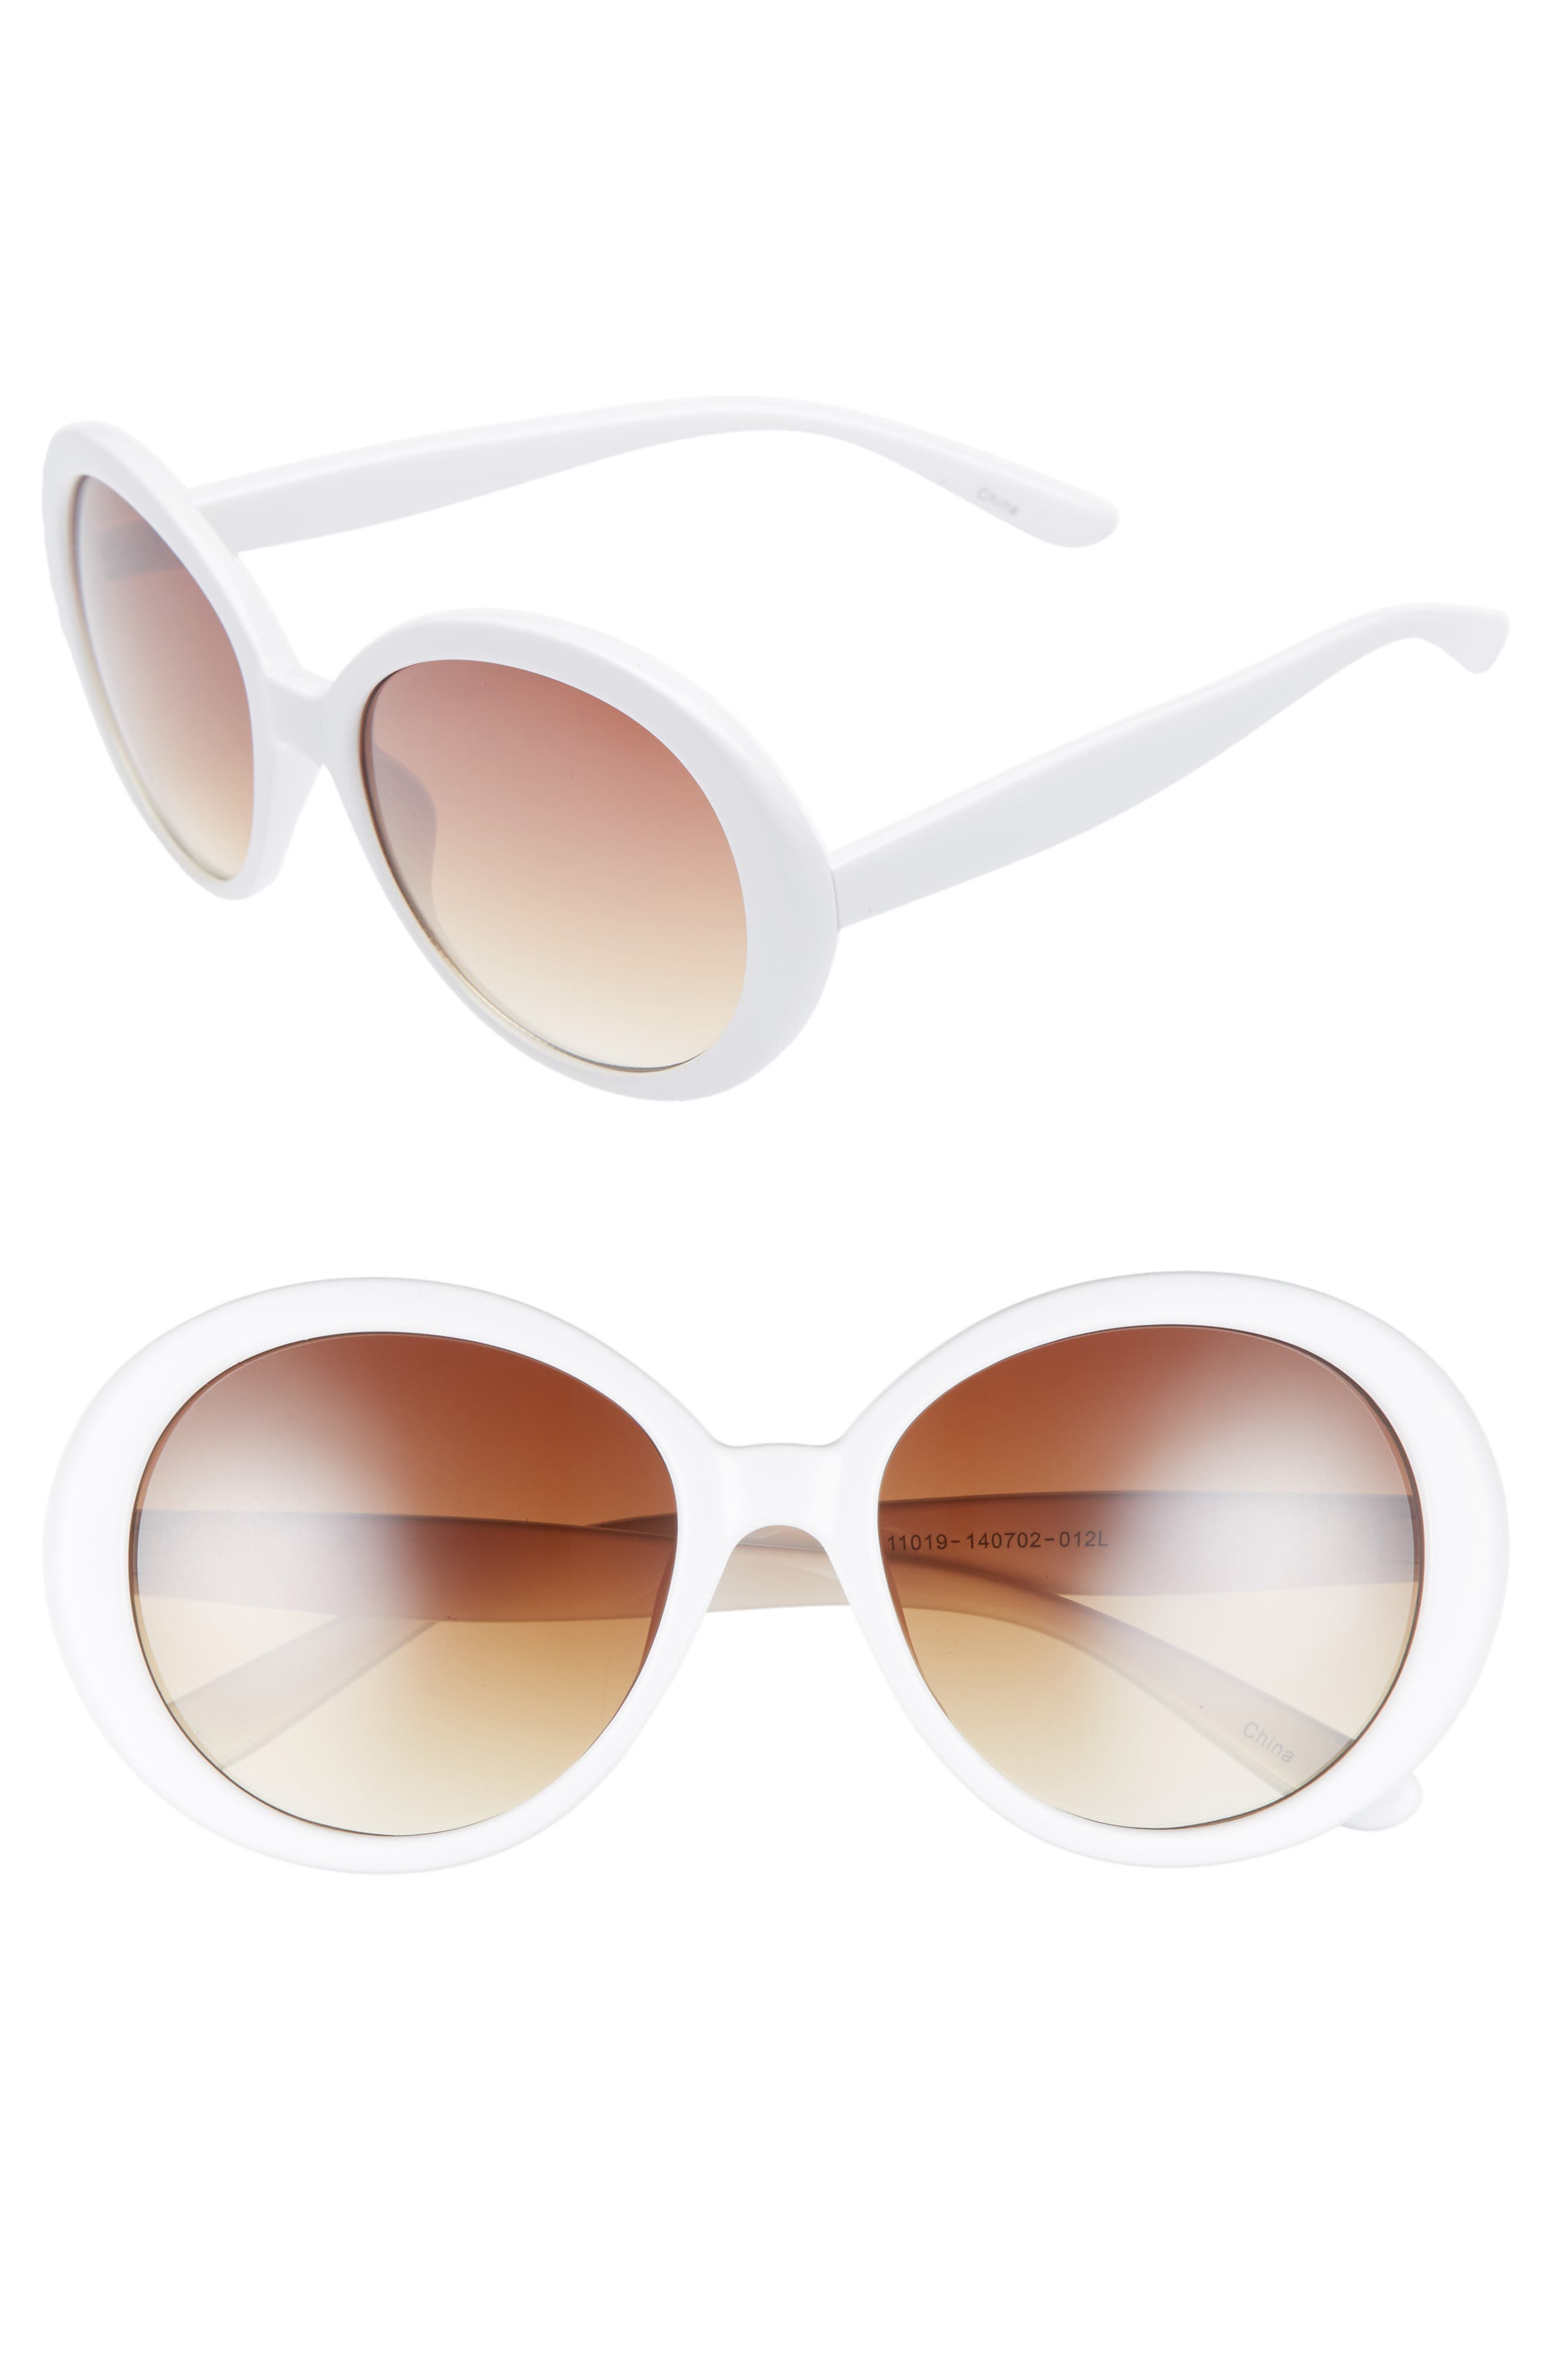 55mm Oval Sunglasses,                         Main,                         color, 100